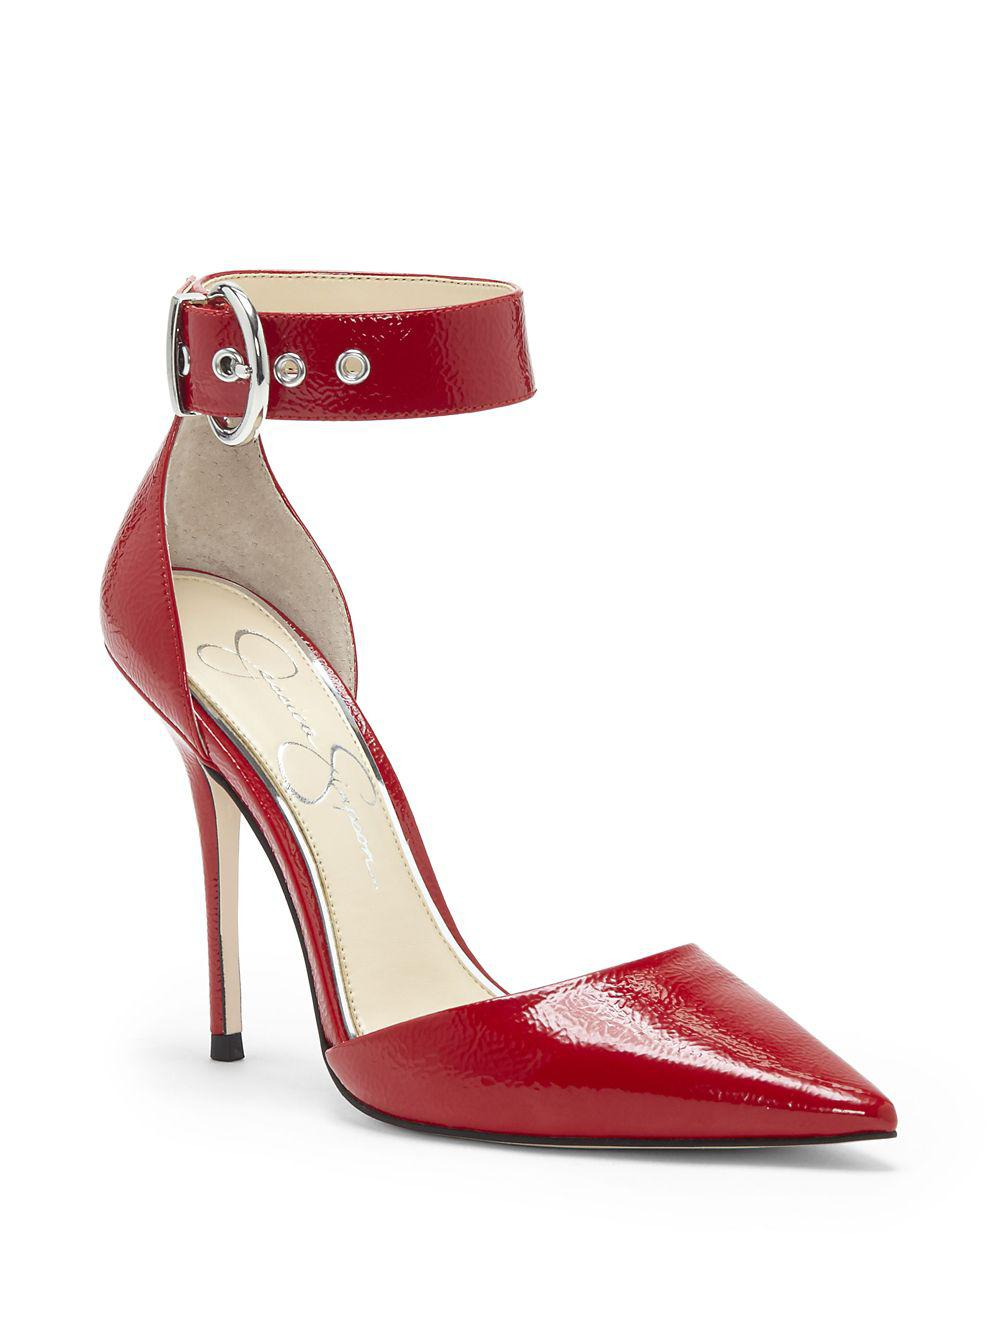 c6343459fdc Jessica Simpson Waldin Patent Leather Ankle-strap Pumps in Red - Lyst